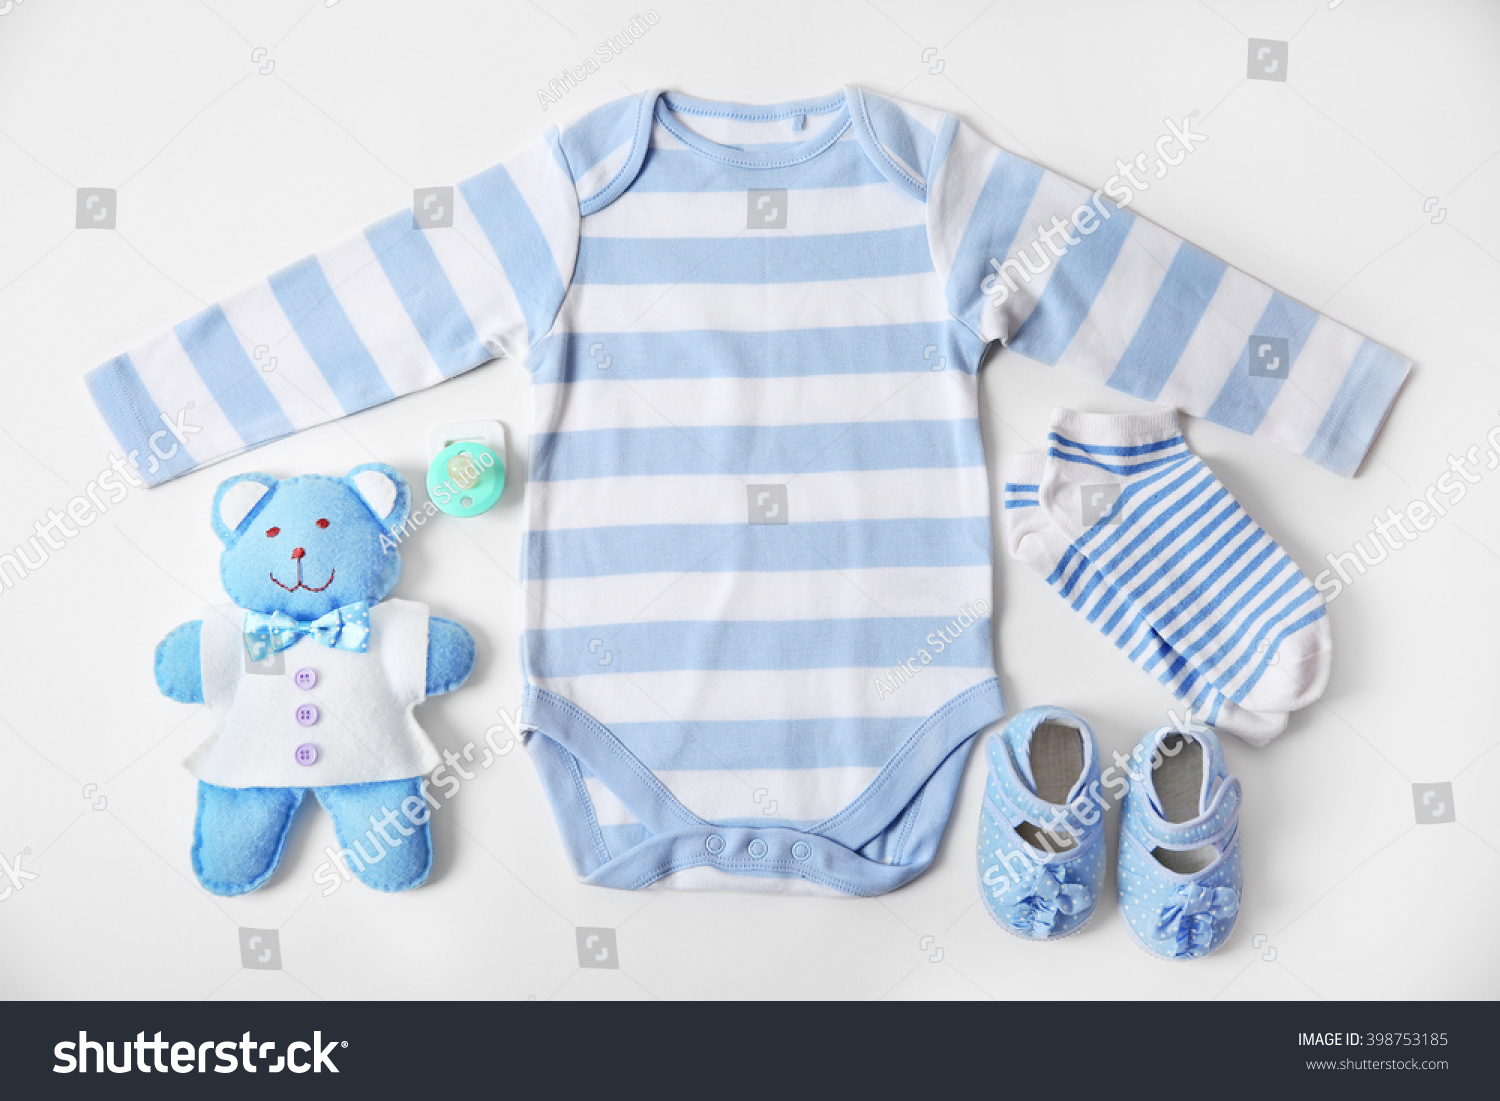 9a971581f9fc Baby Clothes Toys On White Background Stock Photo (Edit Now ...